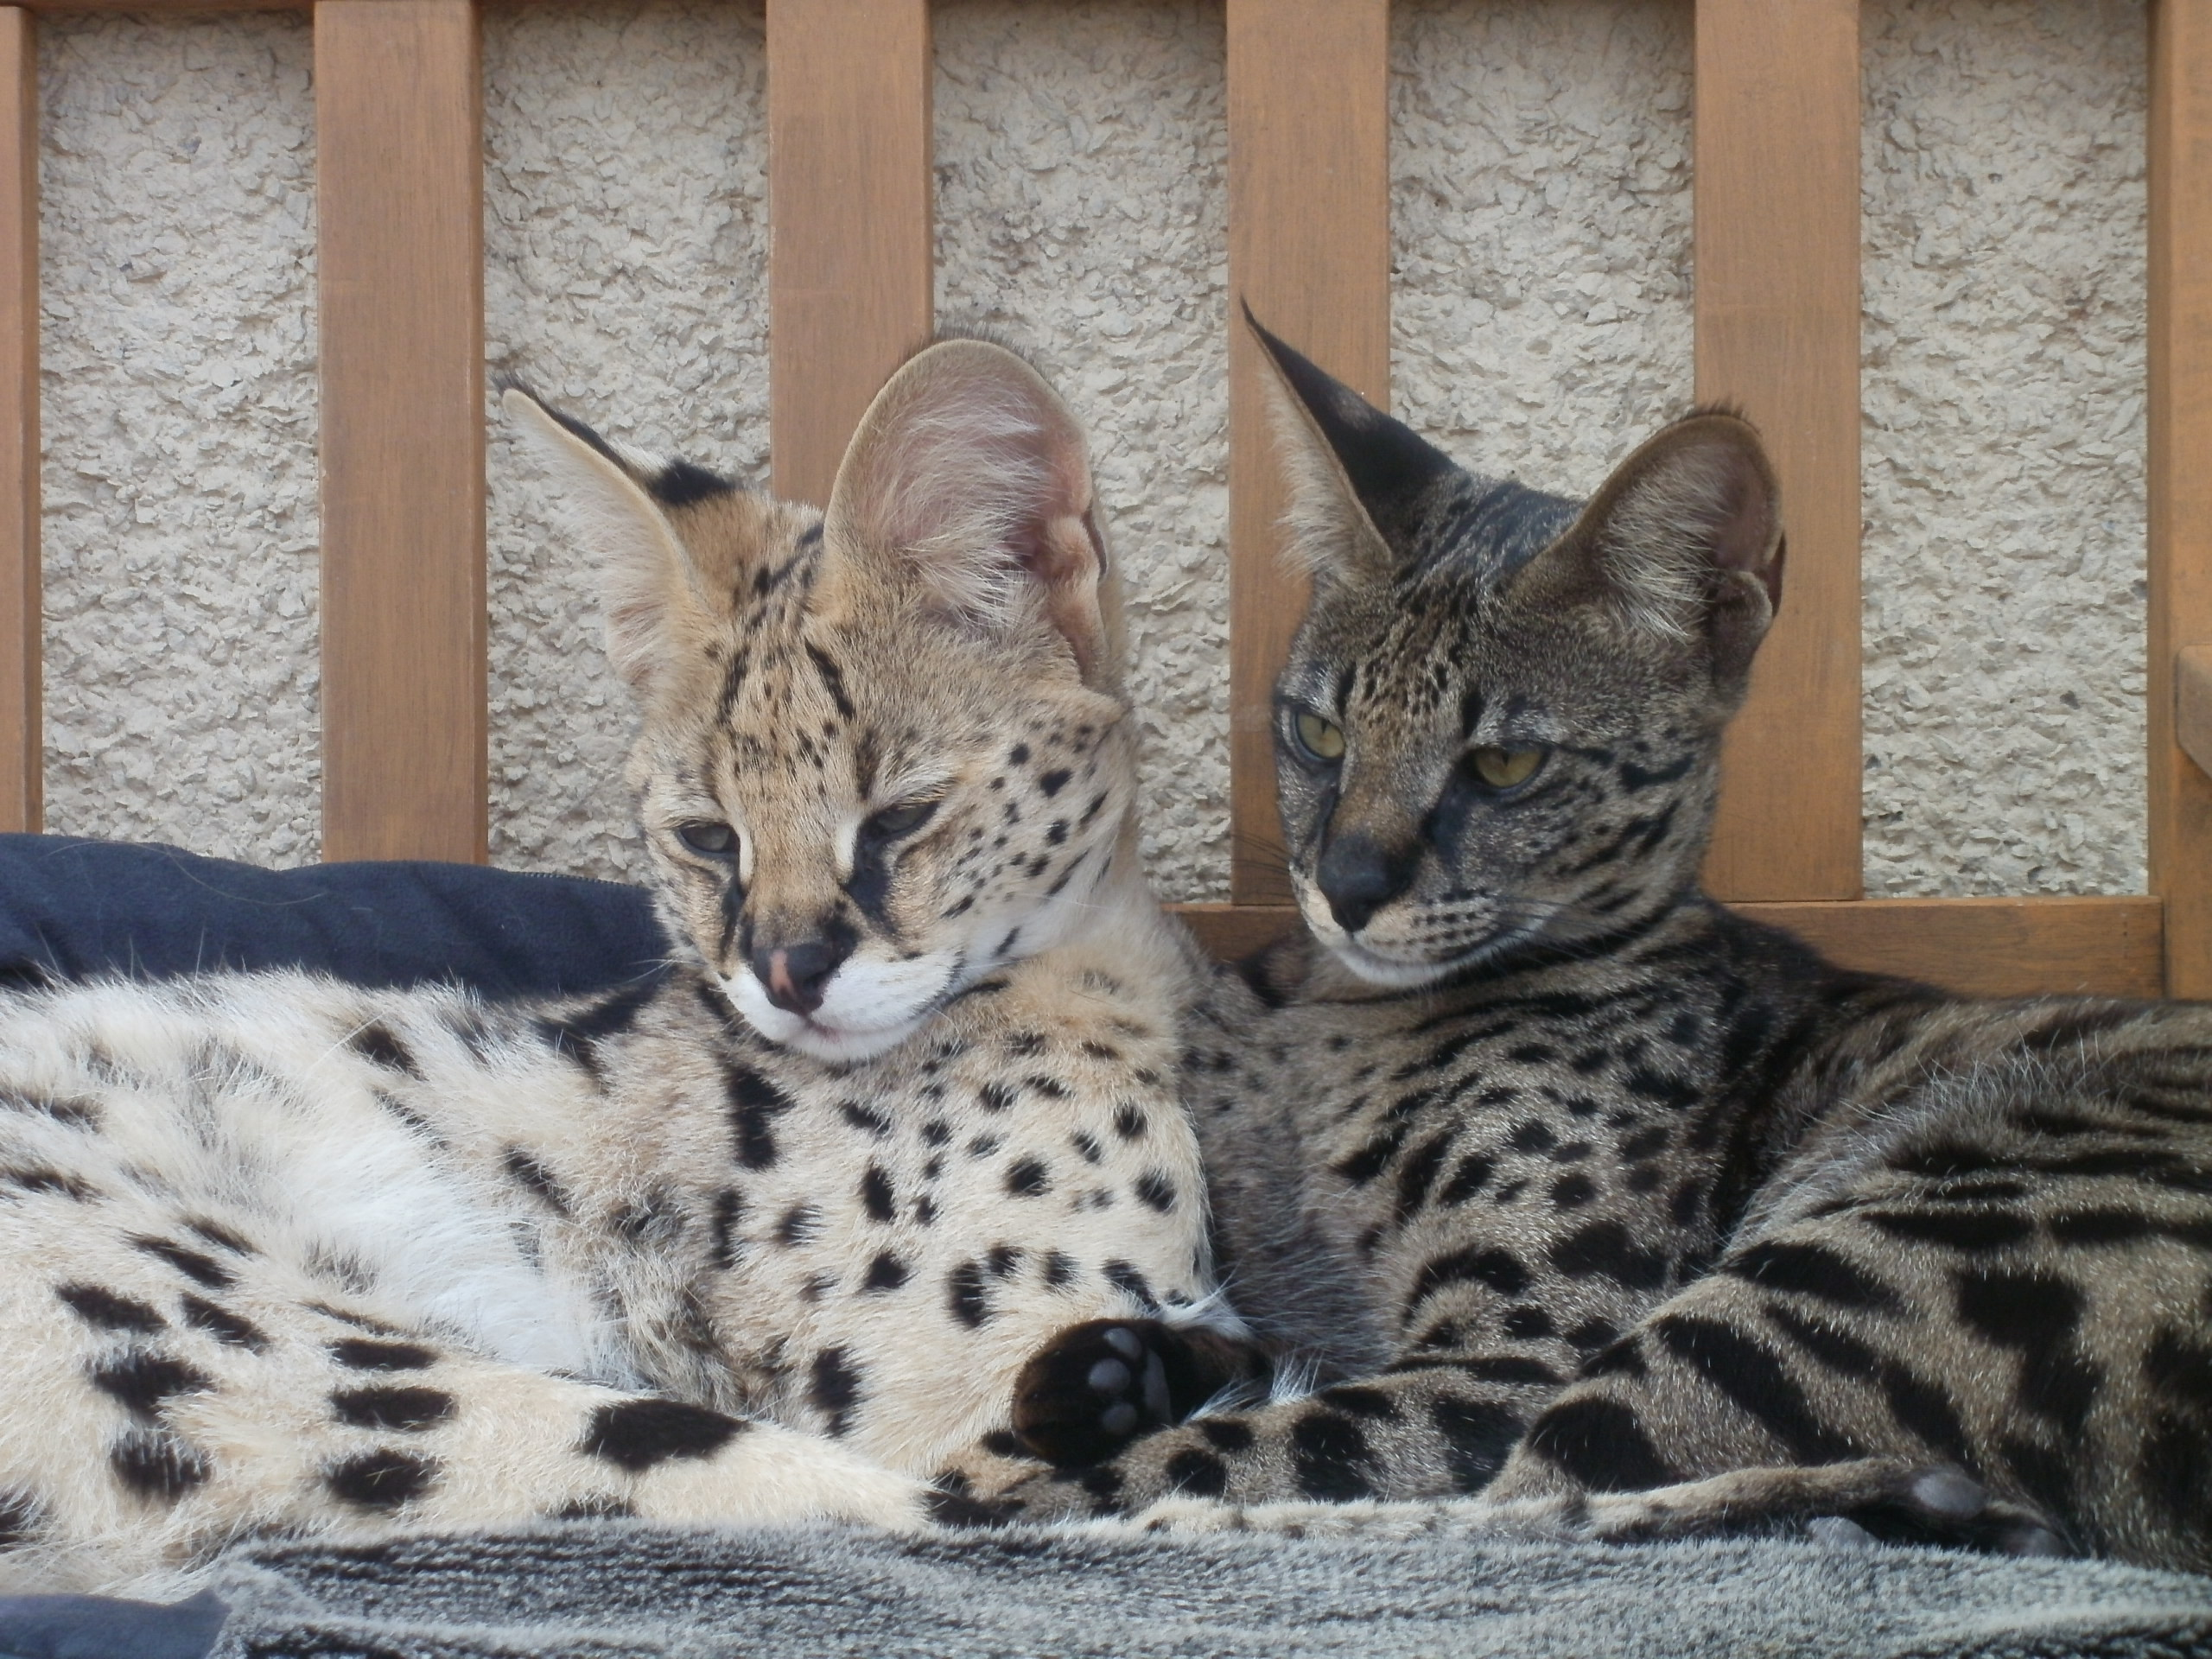 www.hotspotexotics.co.uk - HOTSPOTEXOTICS - Exotic Cats